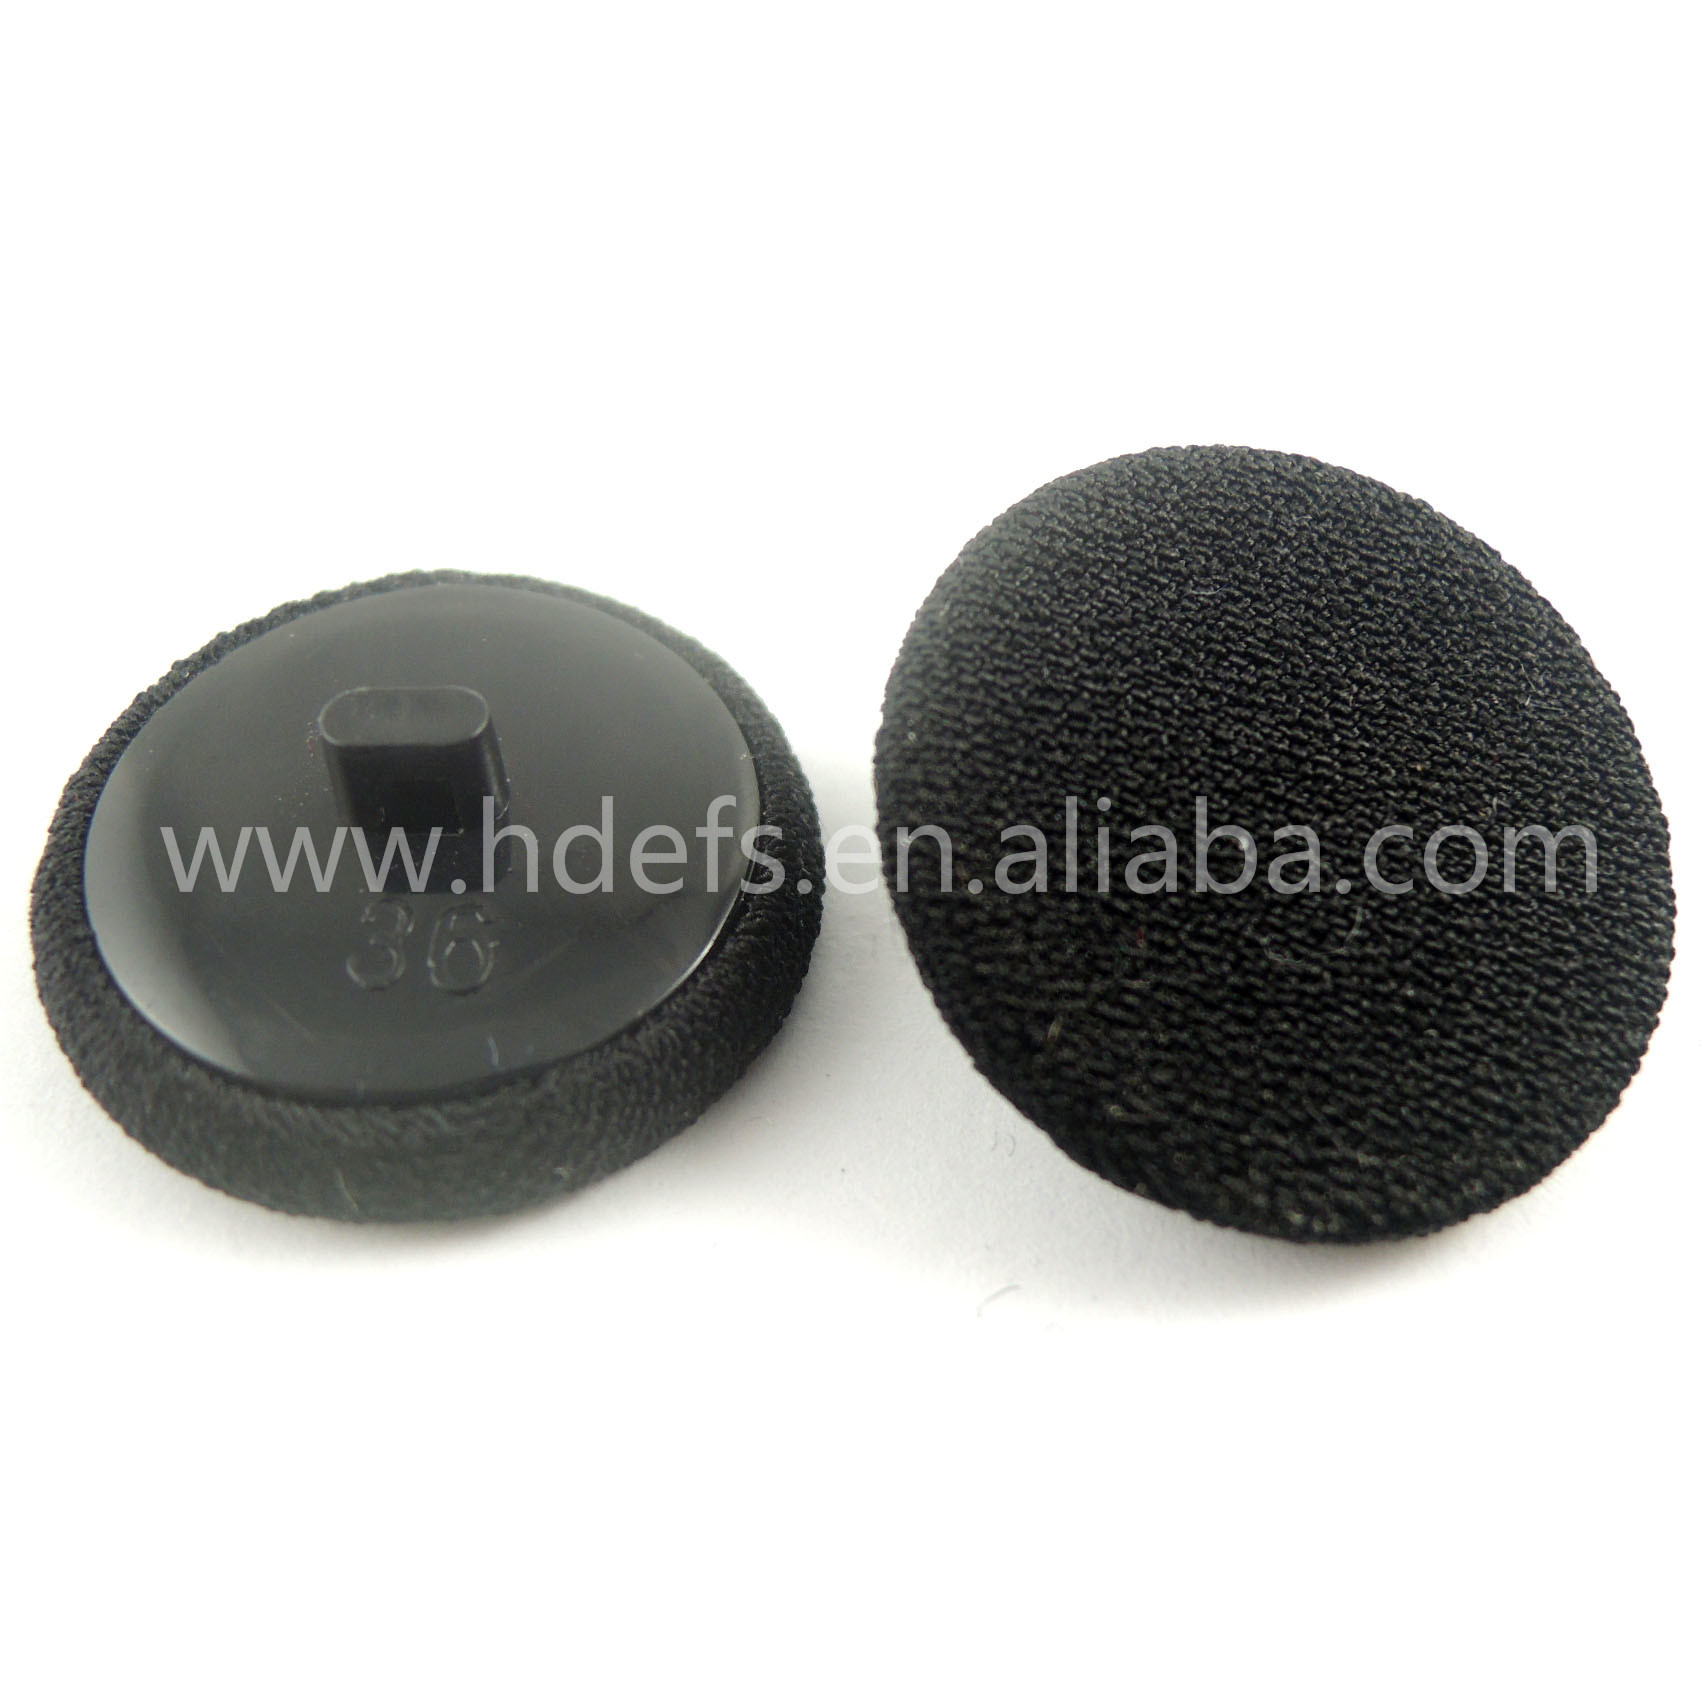 36L flat button 23mm Plastic Black Back fabric cover buttons